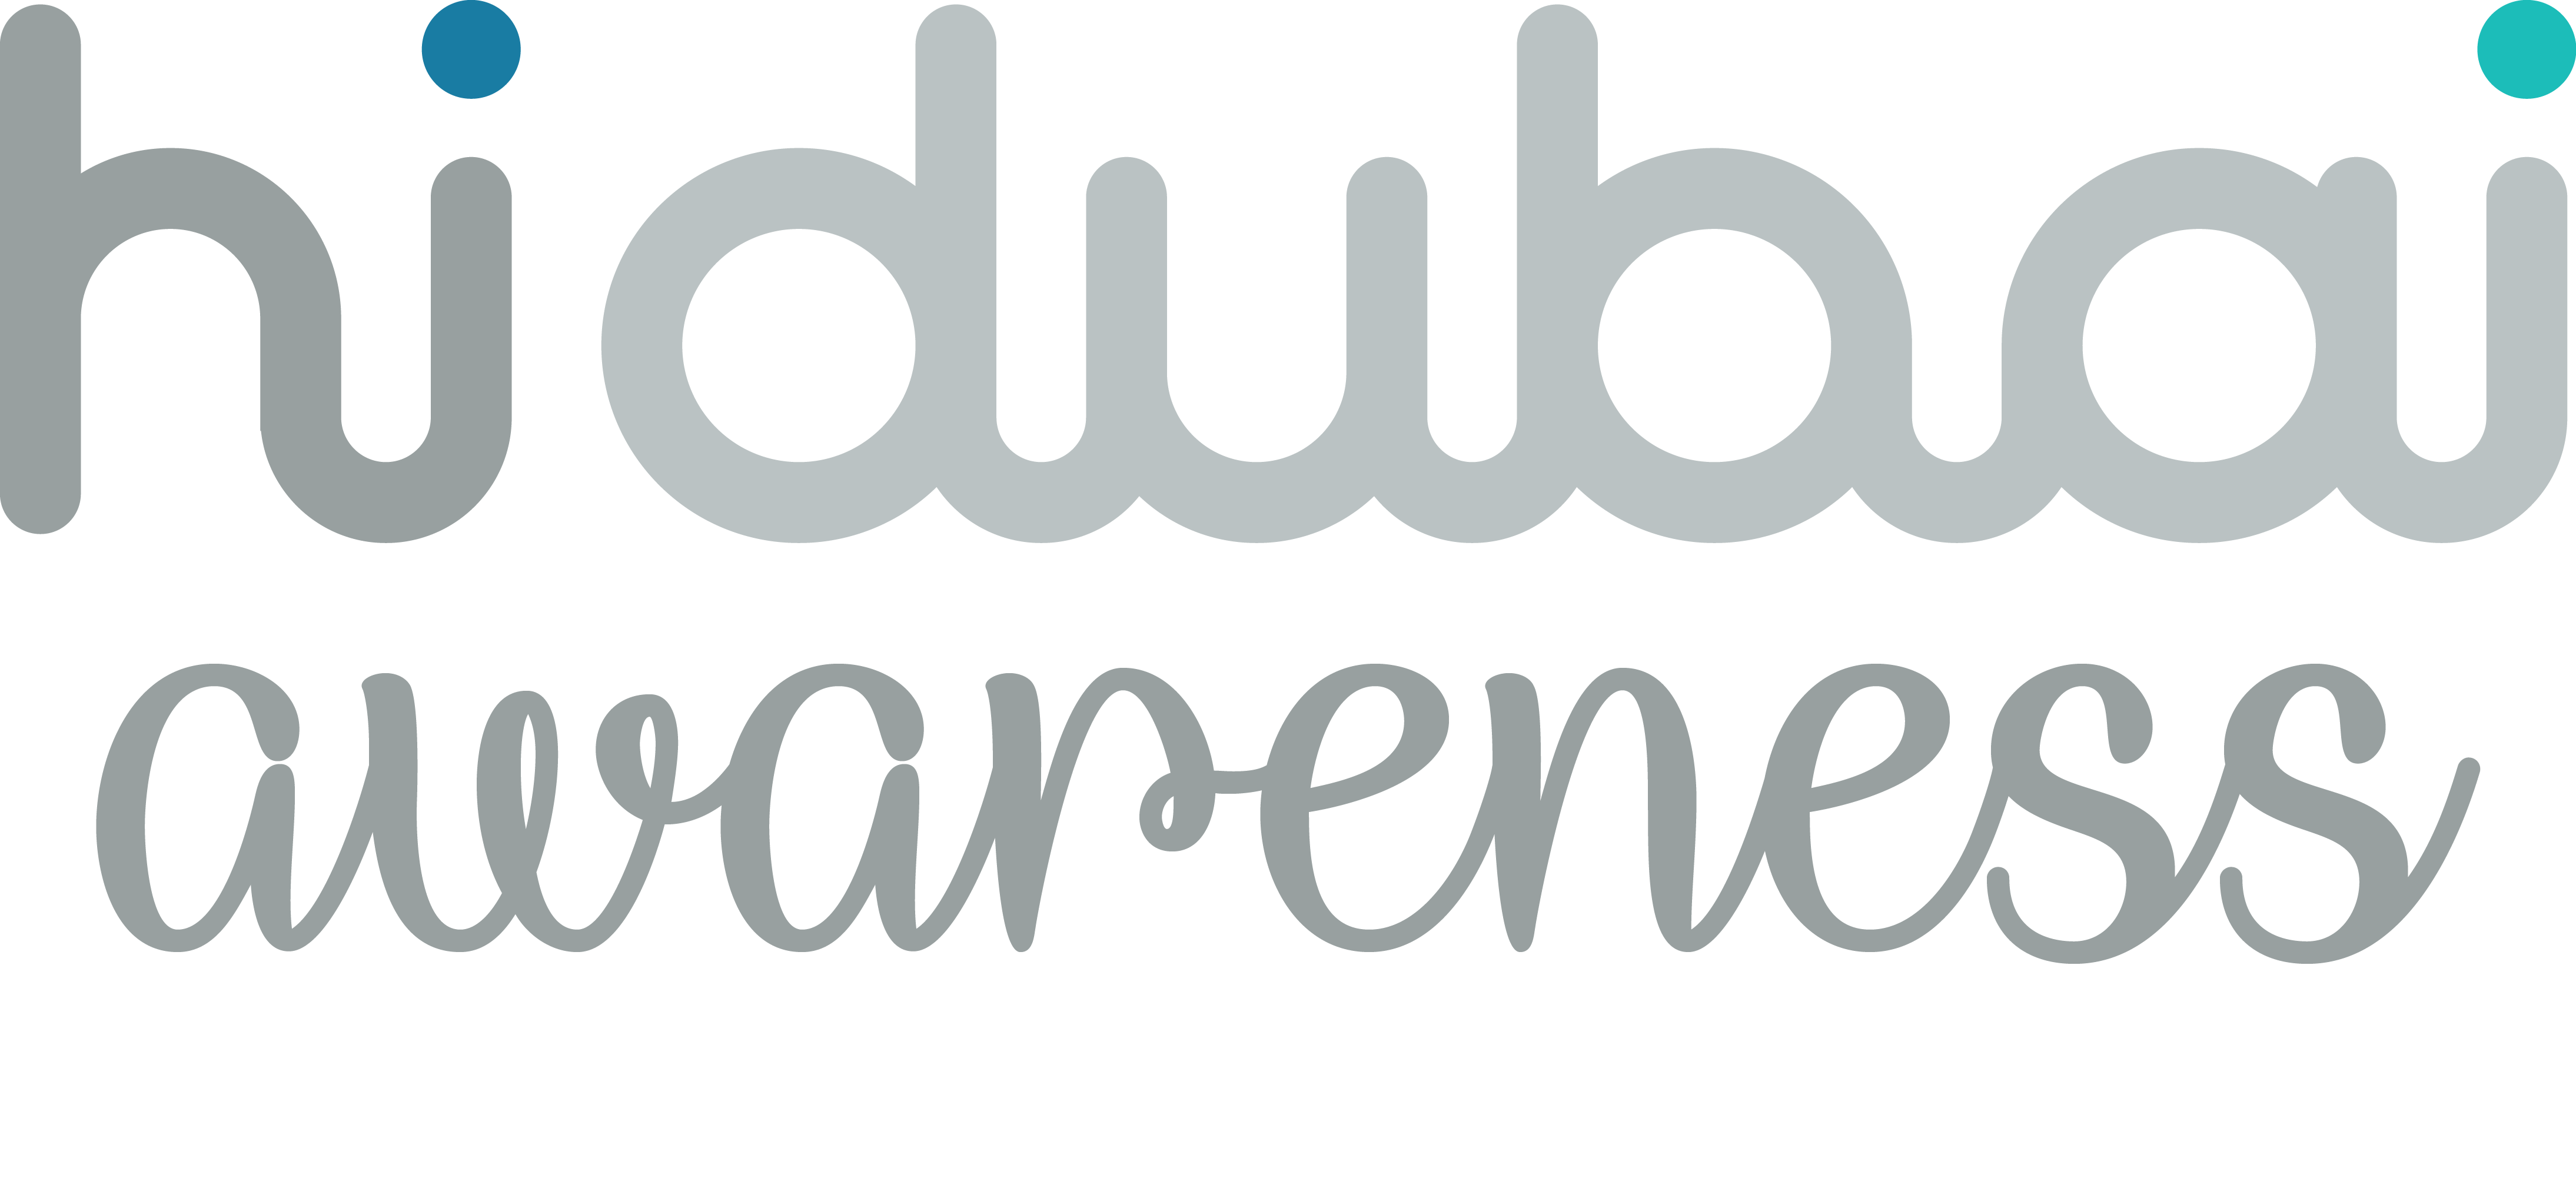 Covid Awareness by HiDubai